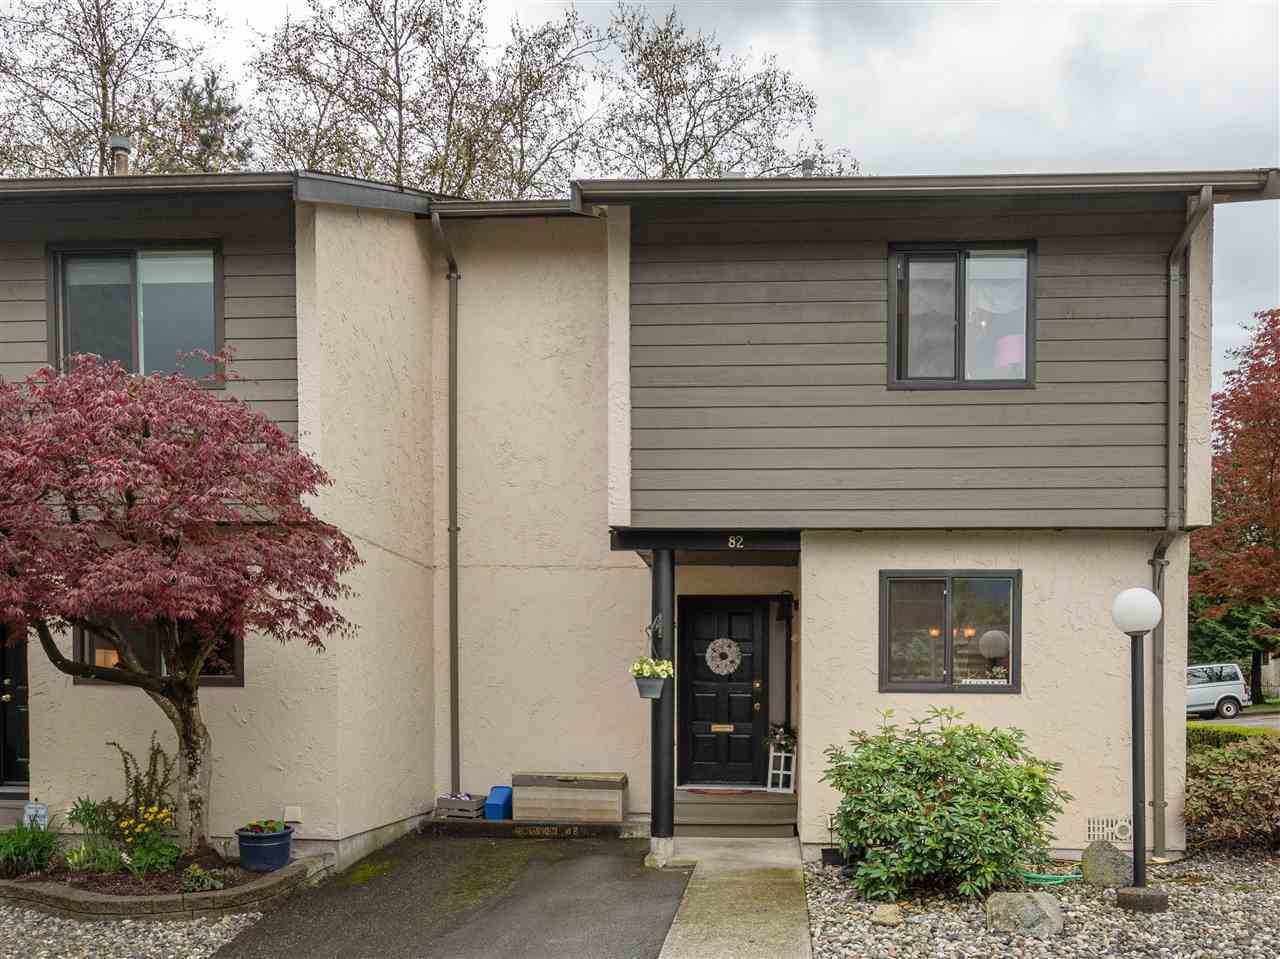 """Main Photo: 82 2905 NORMAN Avenue in Coquitlam: Ranch Park Townhouse for sale in """"PARKWOOD ESTATES"""" : MLS®# R2362487"""